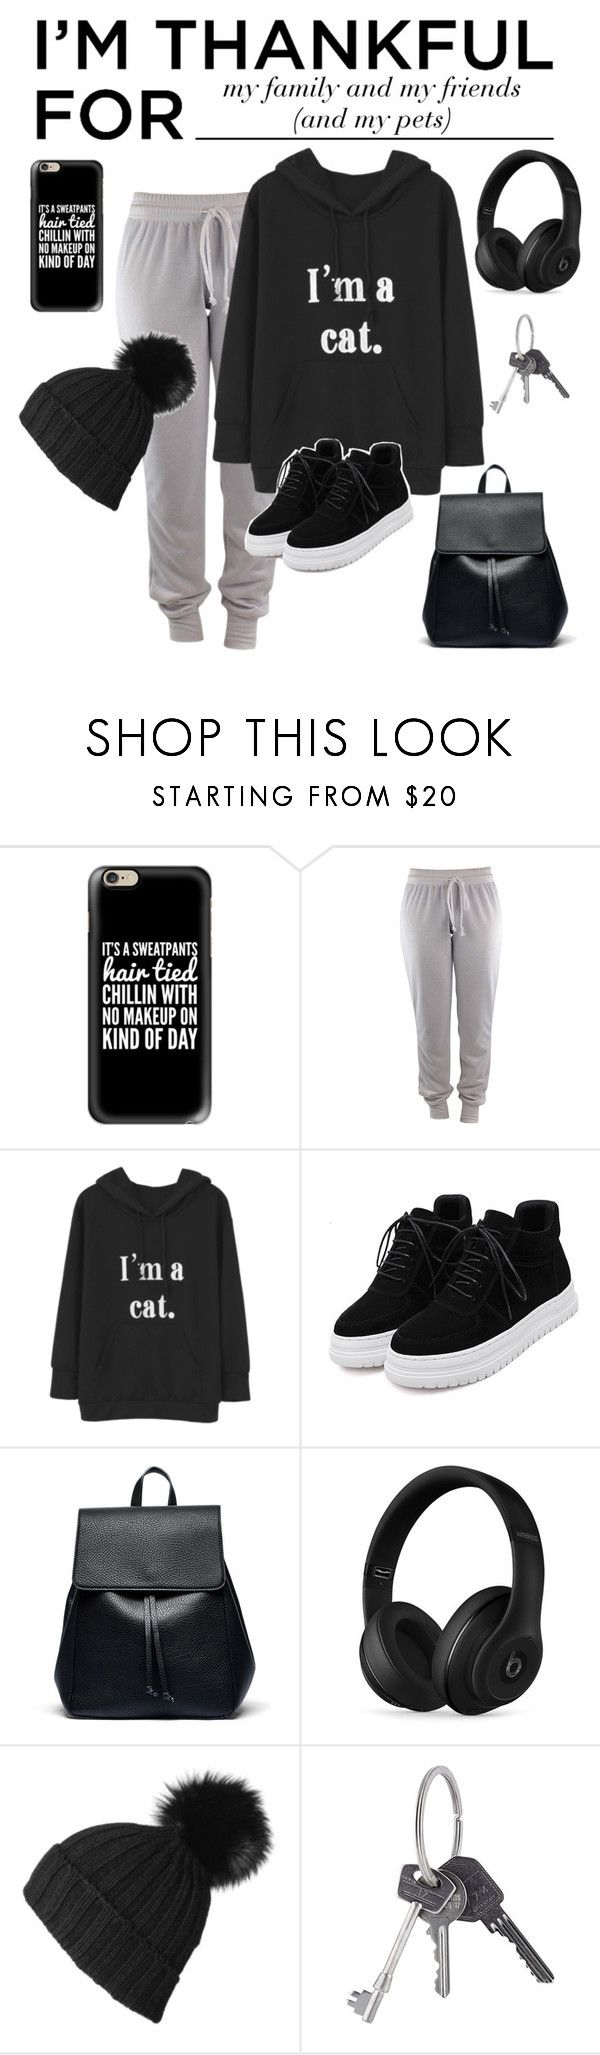 """""""My Family, my friends and my pets."""" by wolvestyle ❤ liked on Polyvore featuring Casetify, Sole Society, Beats by Dr. Dre, Black, Givenchy and imthankfulfor"""